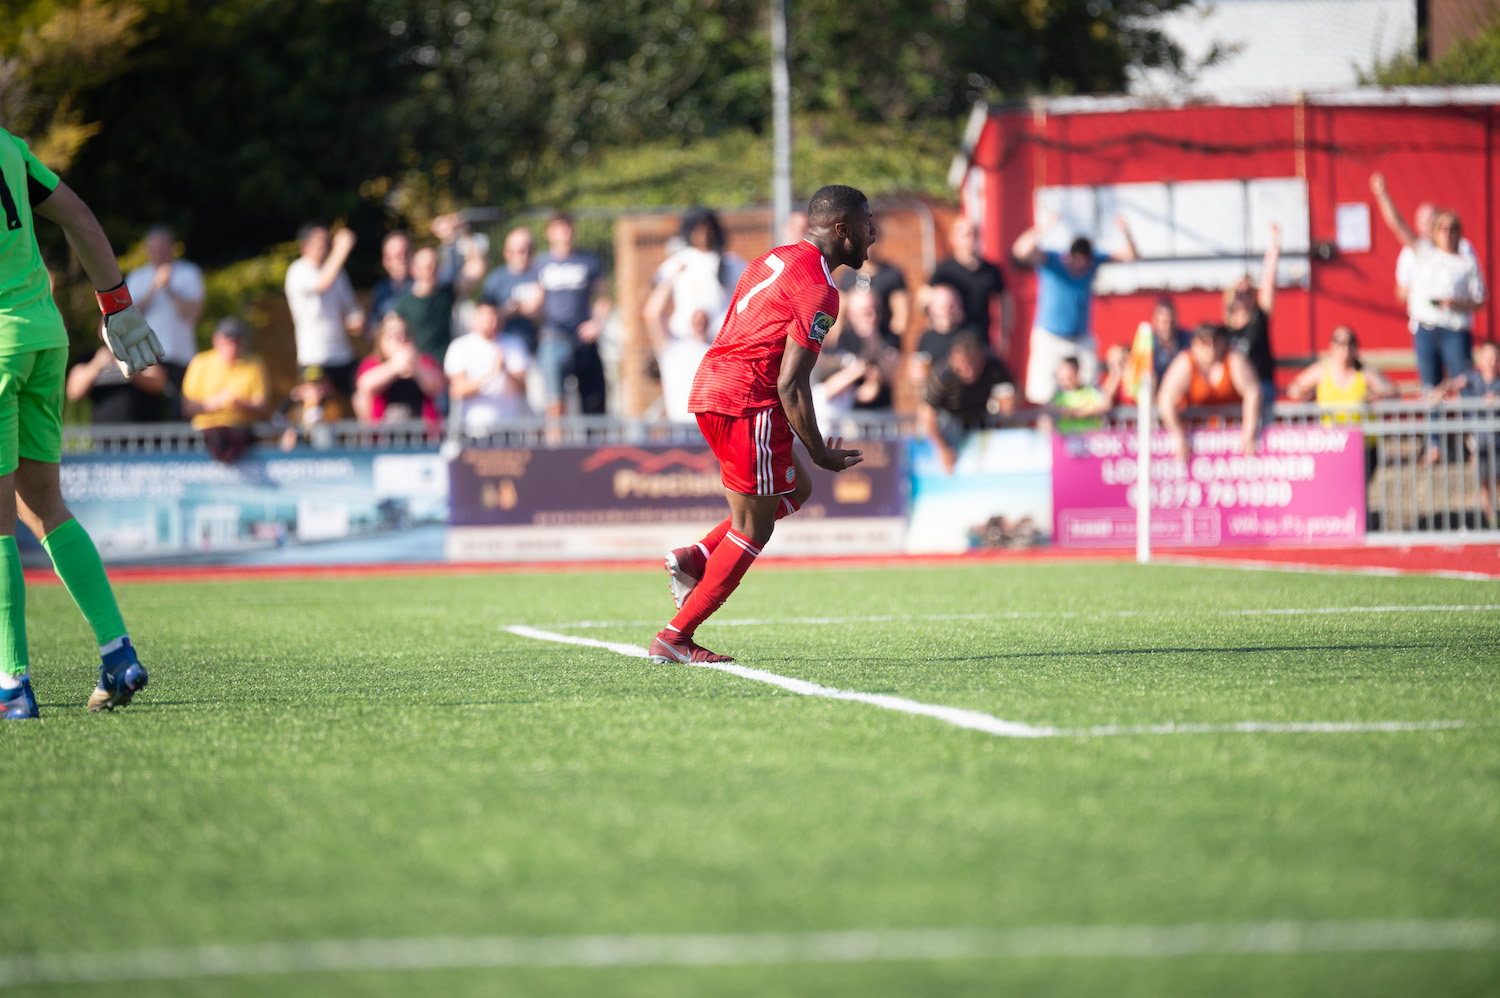 Read the full article - HIGHLIGHTS: Worthing 1-1 Tonbridge [H] – League